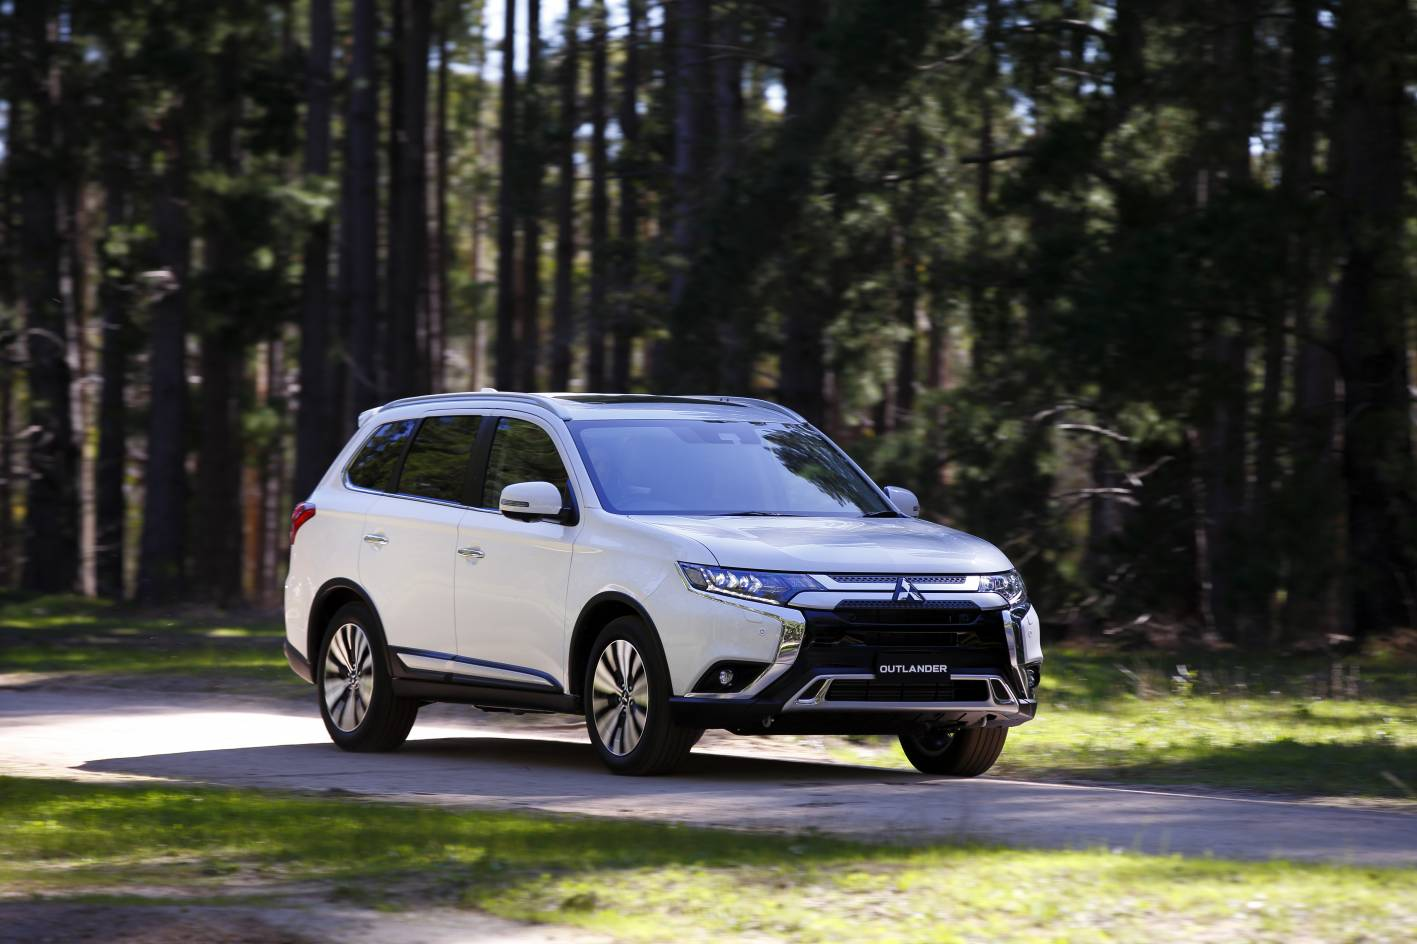 Mitsubishi's Outlander SUV – around for a long time but remains the fifth best-selling medium SUV.